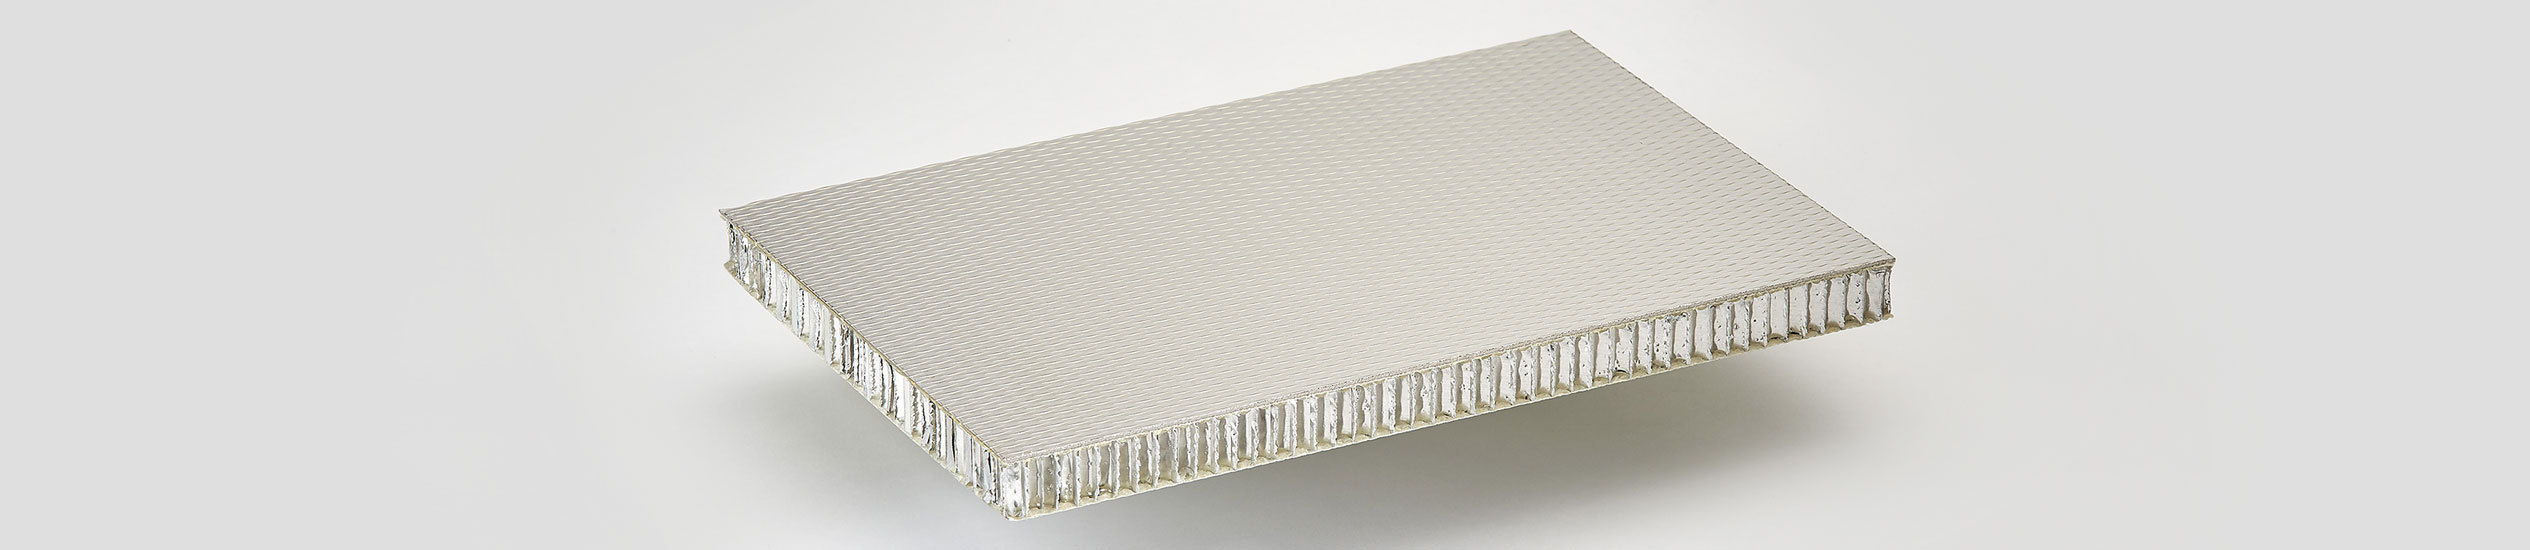 Lightweight sandwich panel with a core in aluminium honeycomb with glass fiber reinforced with epoxy resin and a skin in stainless steel satin finished.